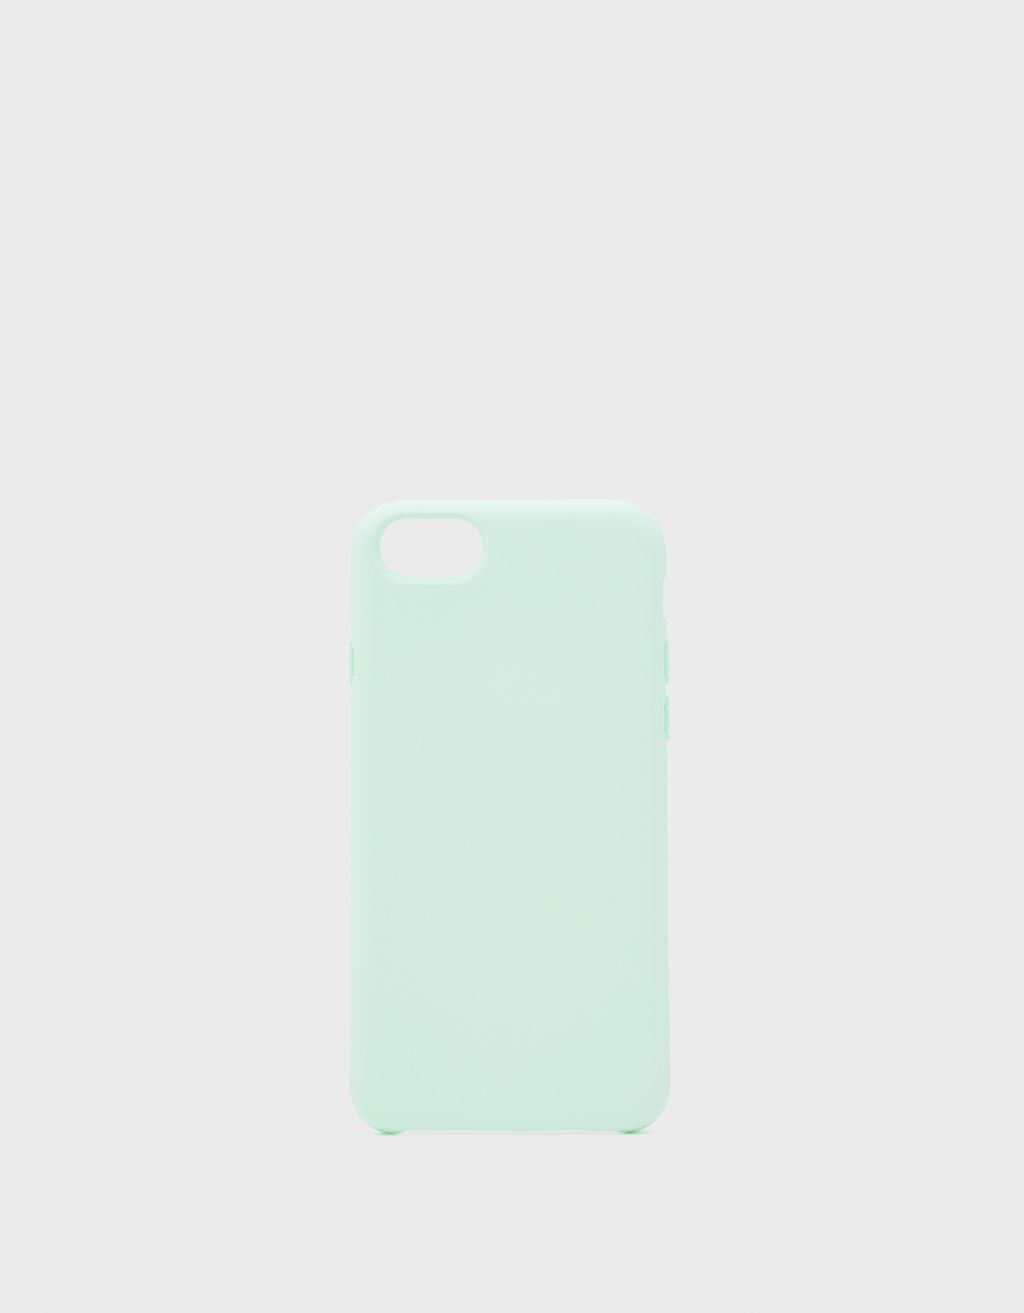 Coque unie iPhone 6 / 6S / 7 / 8